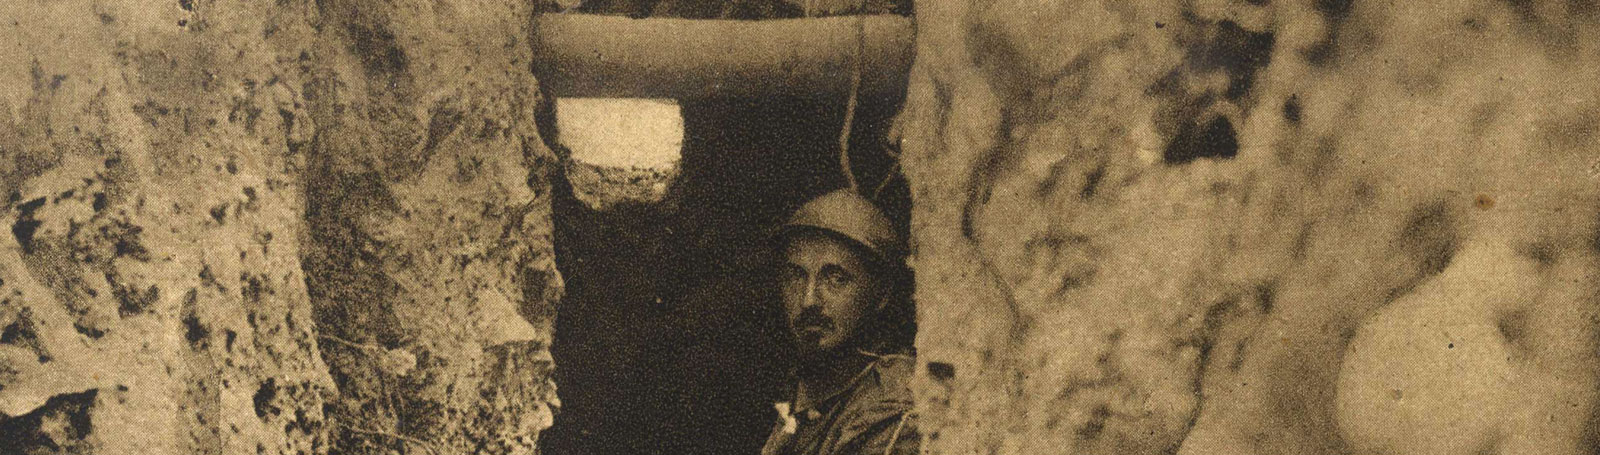 Lone man sat deep inside a dug-out within a trench.